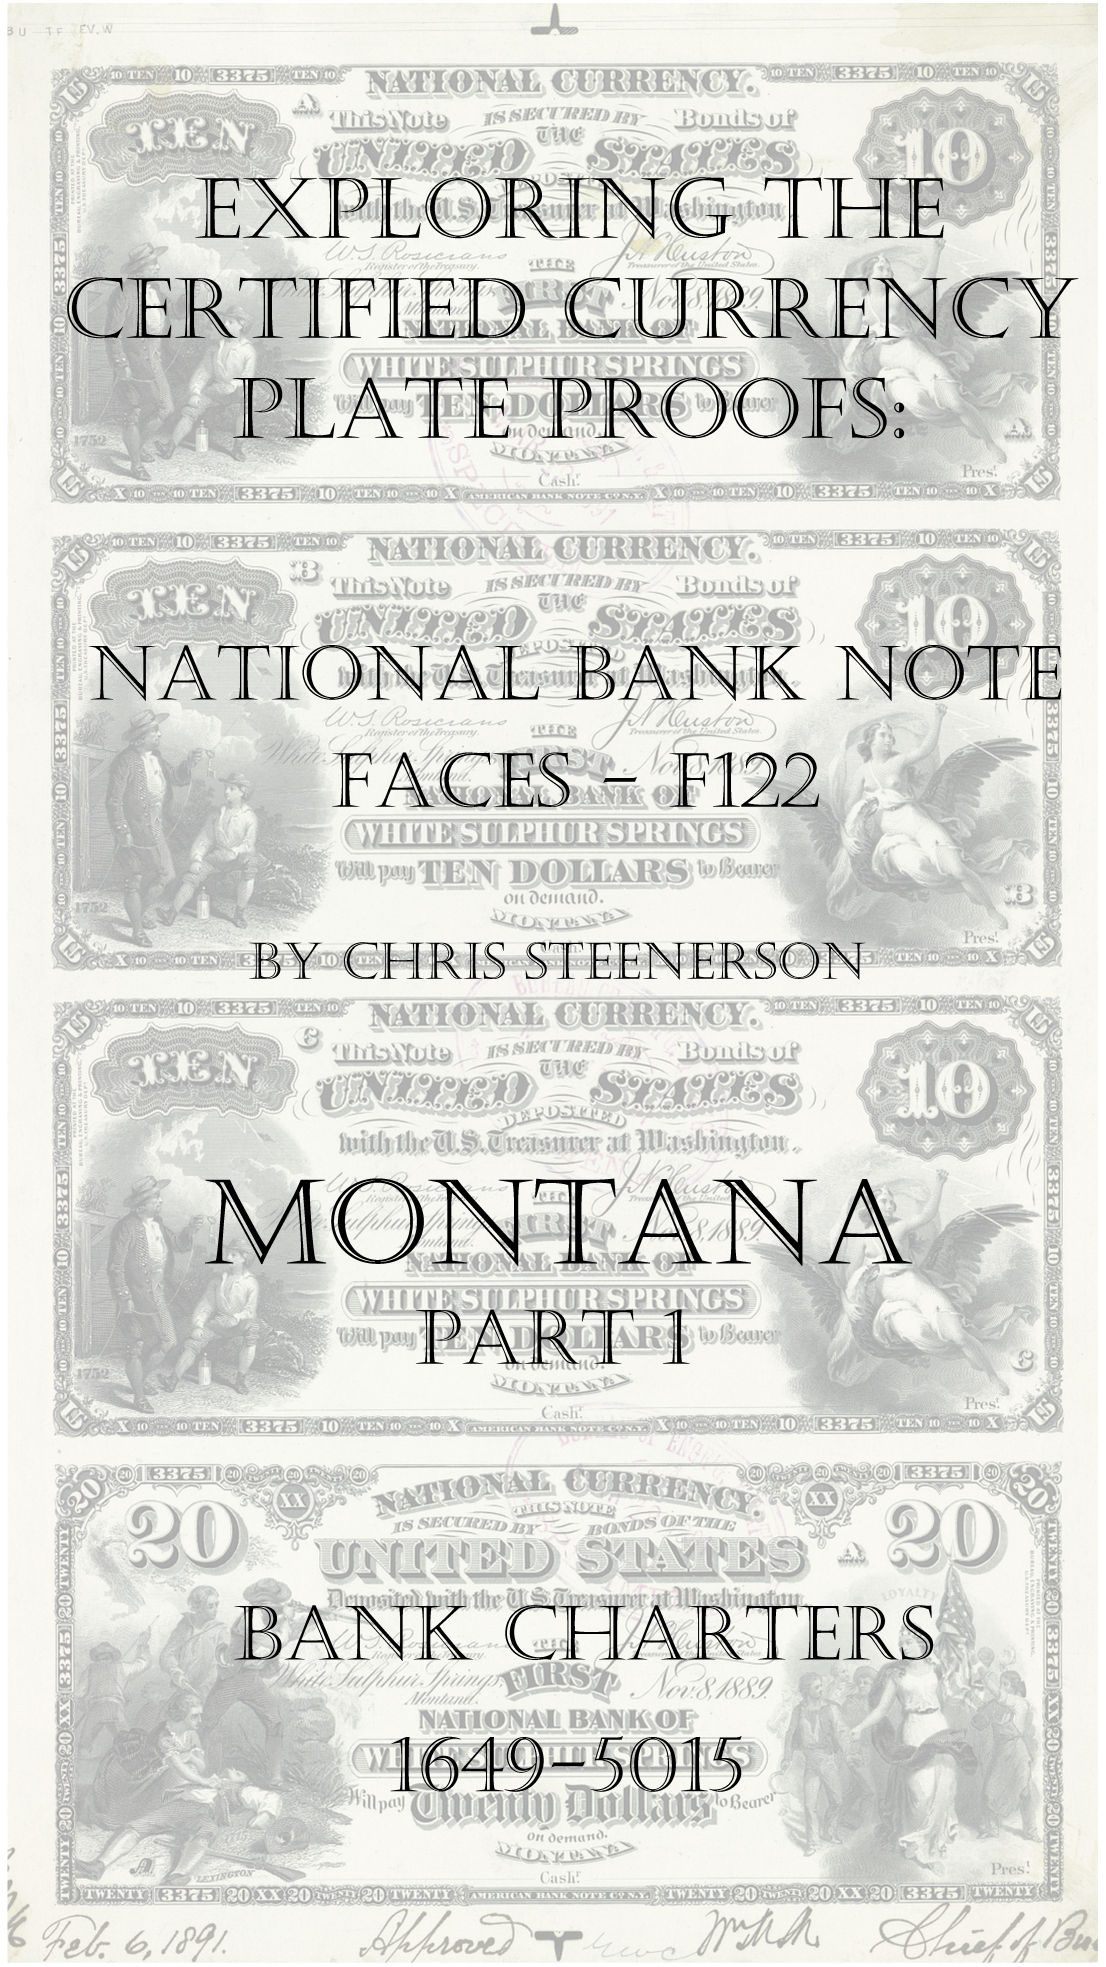 Montana National Bank Note Currency Proofs